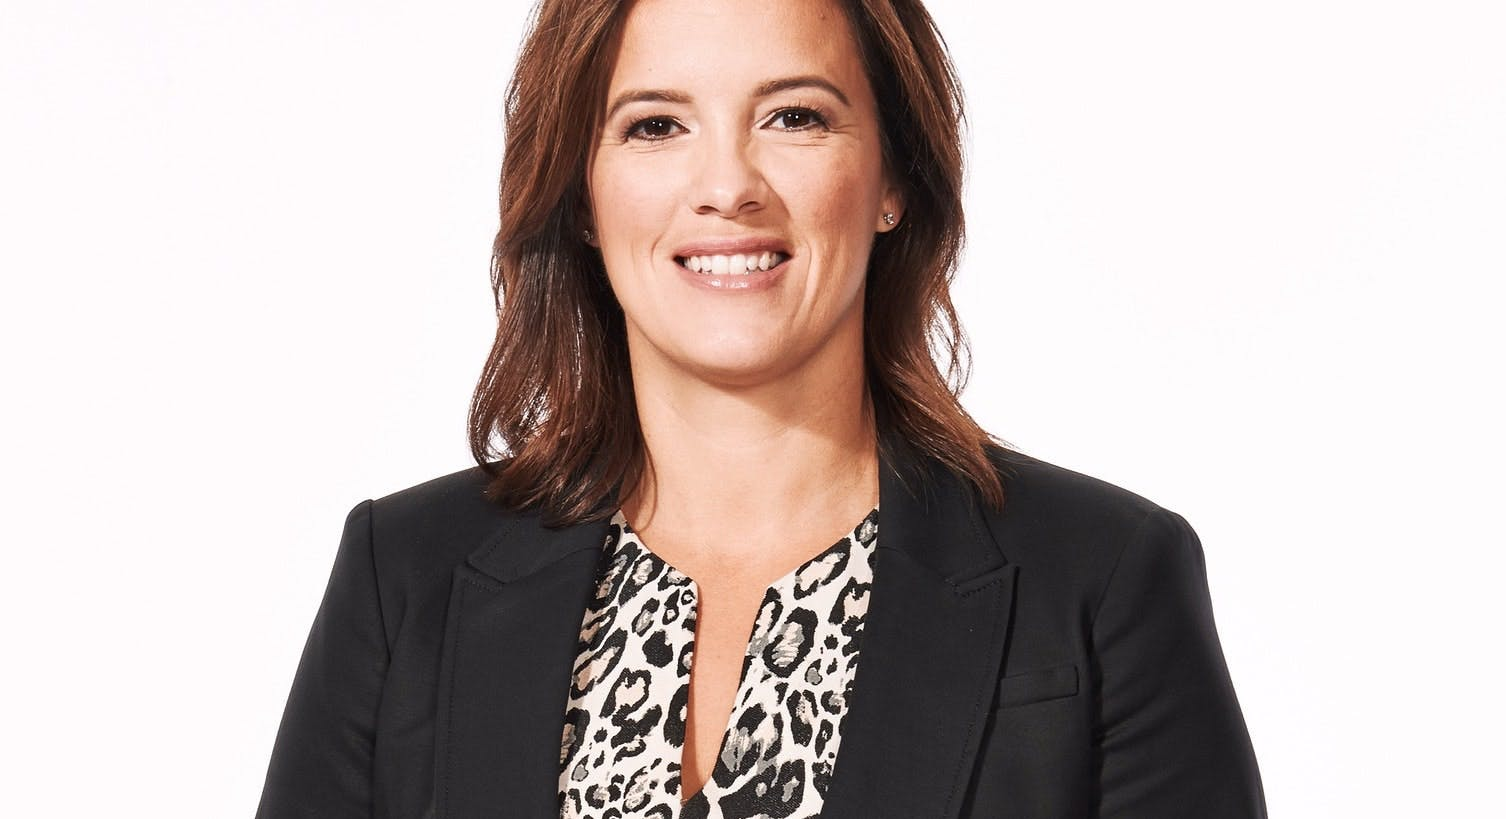 On a recent Hockey Night in Canada broadcast, Cassie Campbell-Pascall called Nova Scotia's premier 'fairly inexperienced' and demanded he apologize for cancelling the Women's World Hockey tournament .